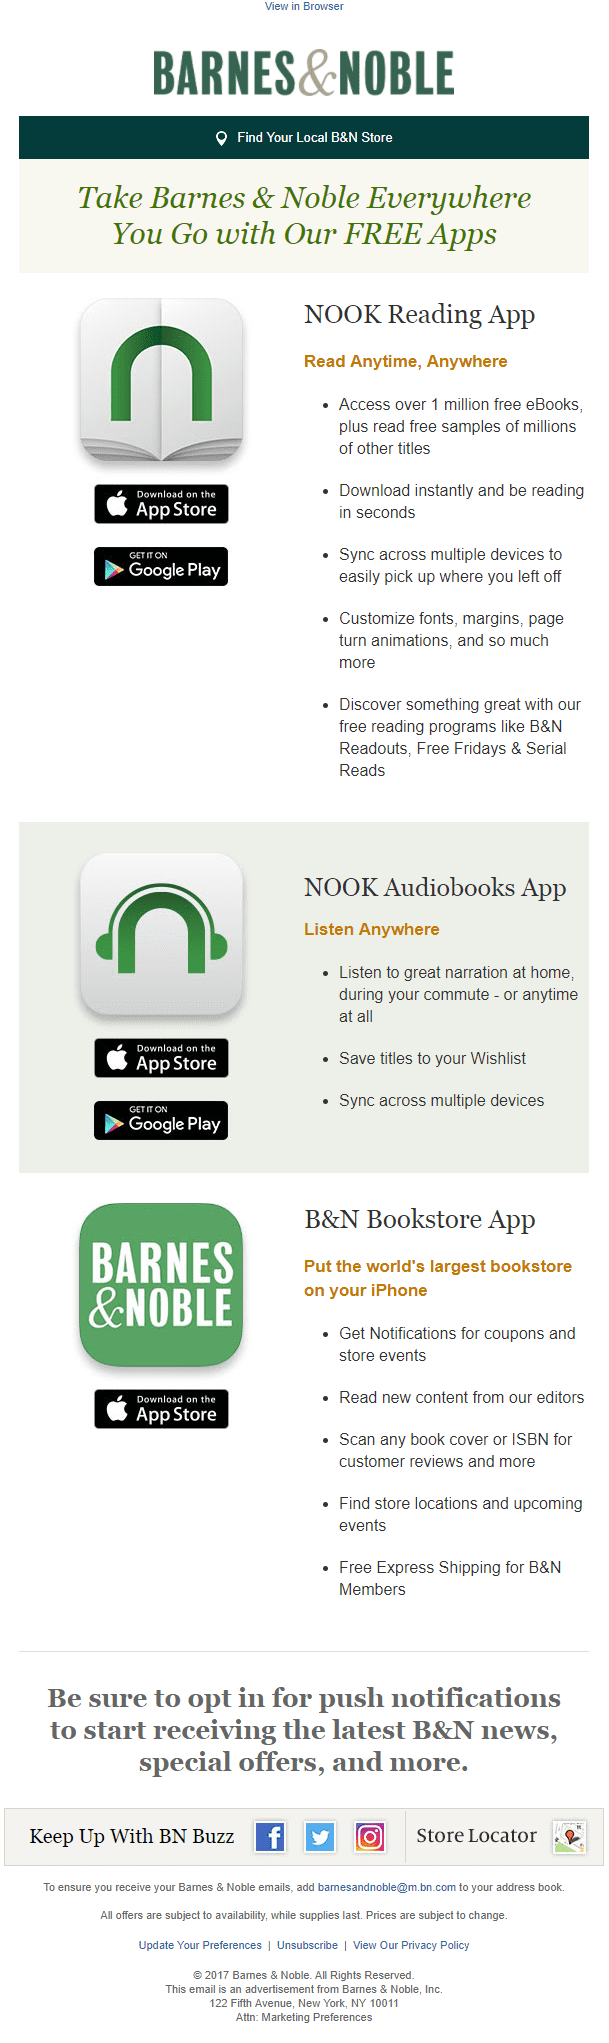 barnes & noble product information education email apps reading nook